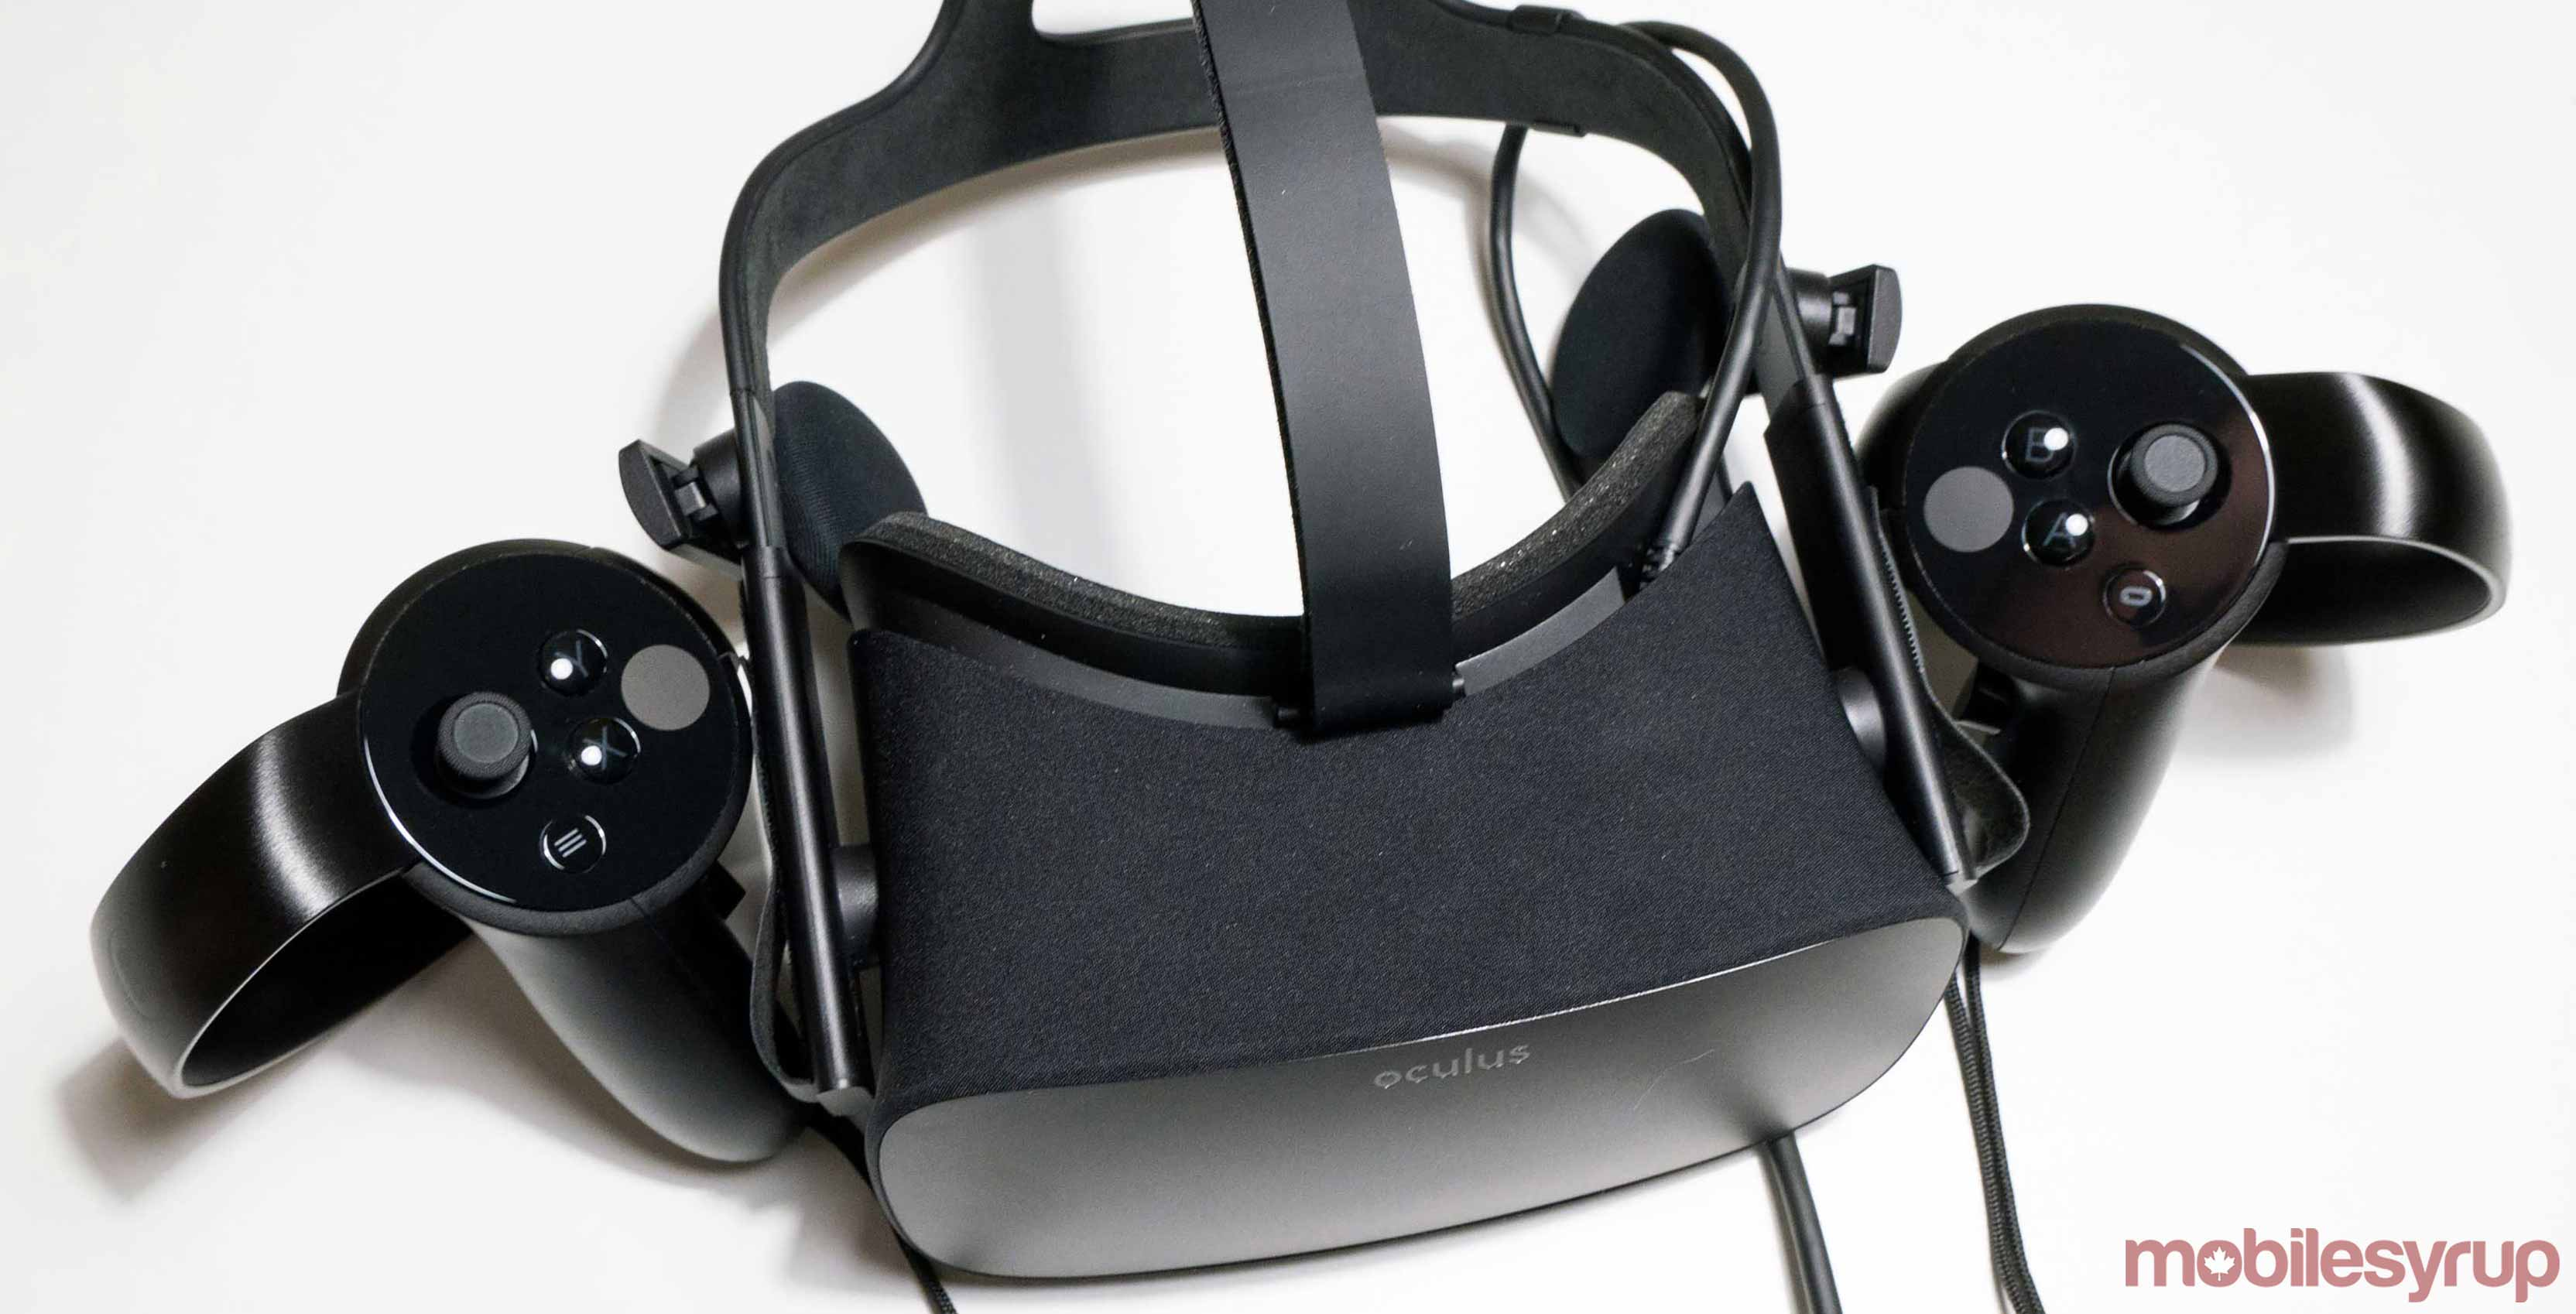 Oculus Rift sitting on table - Oculus Rift drops price